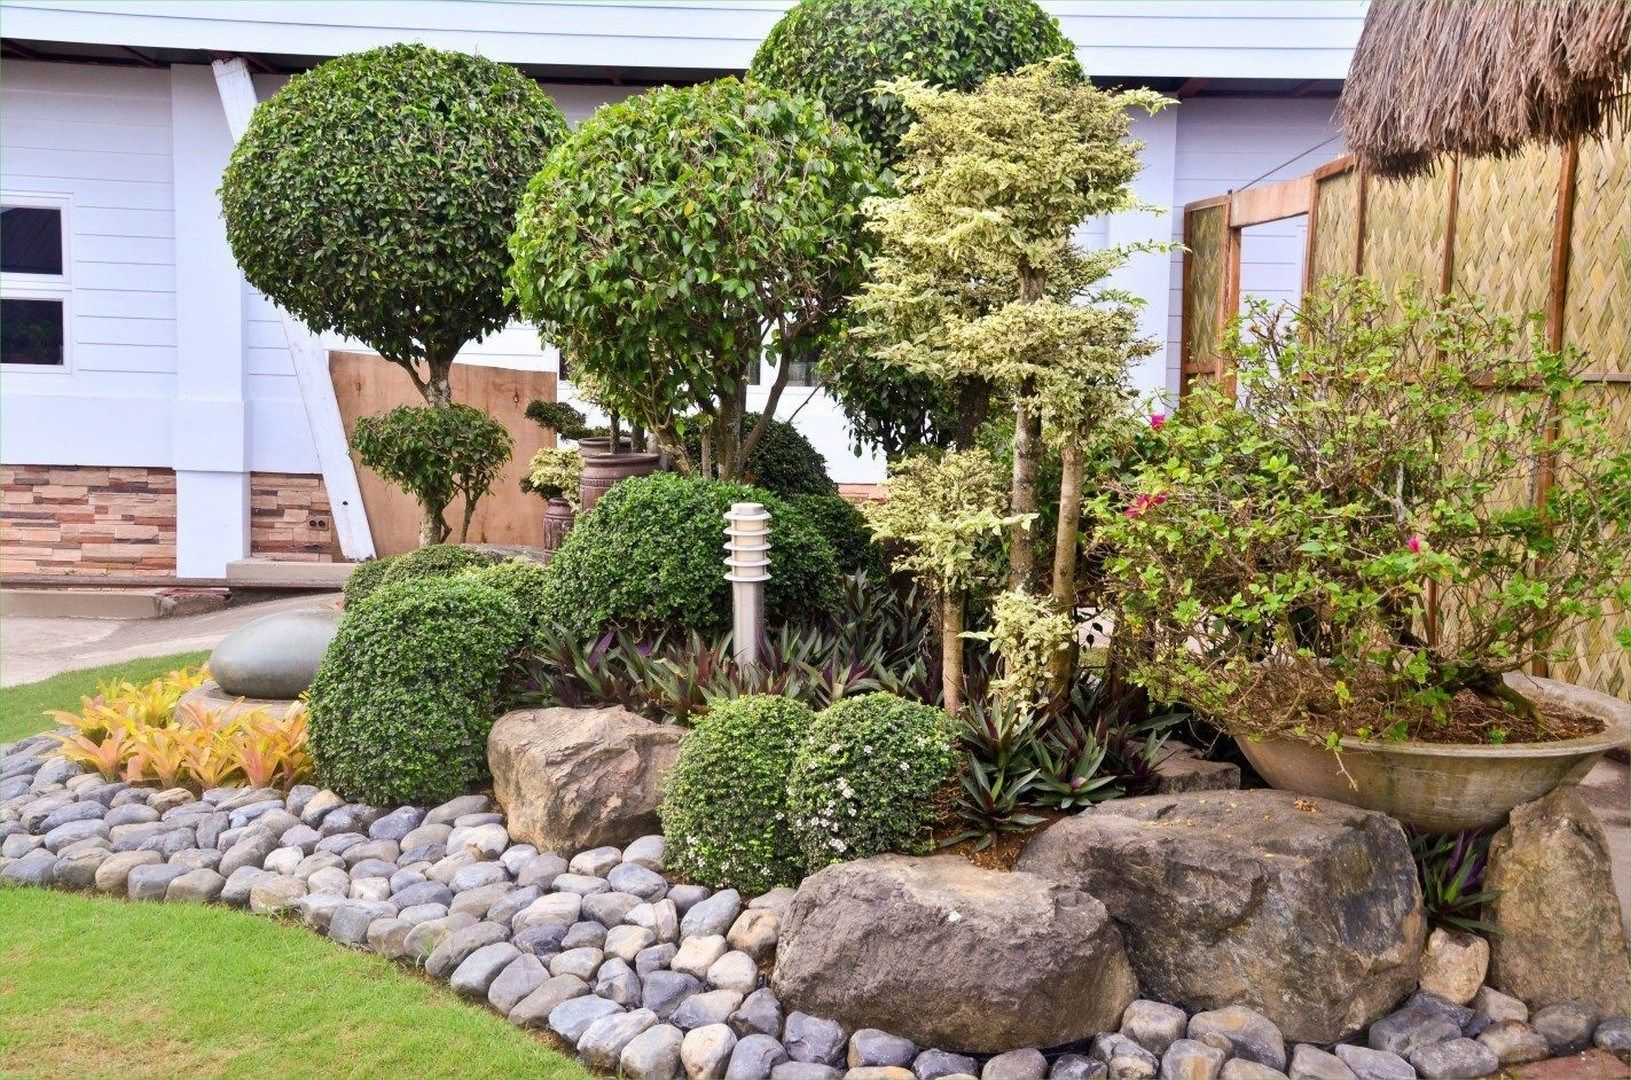 Mulch Improves The Appearance Of A Landscape In Several Ways Especially When Used To Its Entire Pote Landscaping With Rocks River Rock Garden Home Landscaping